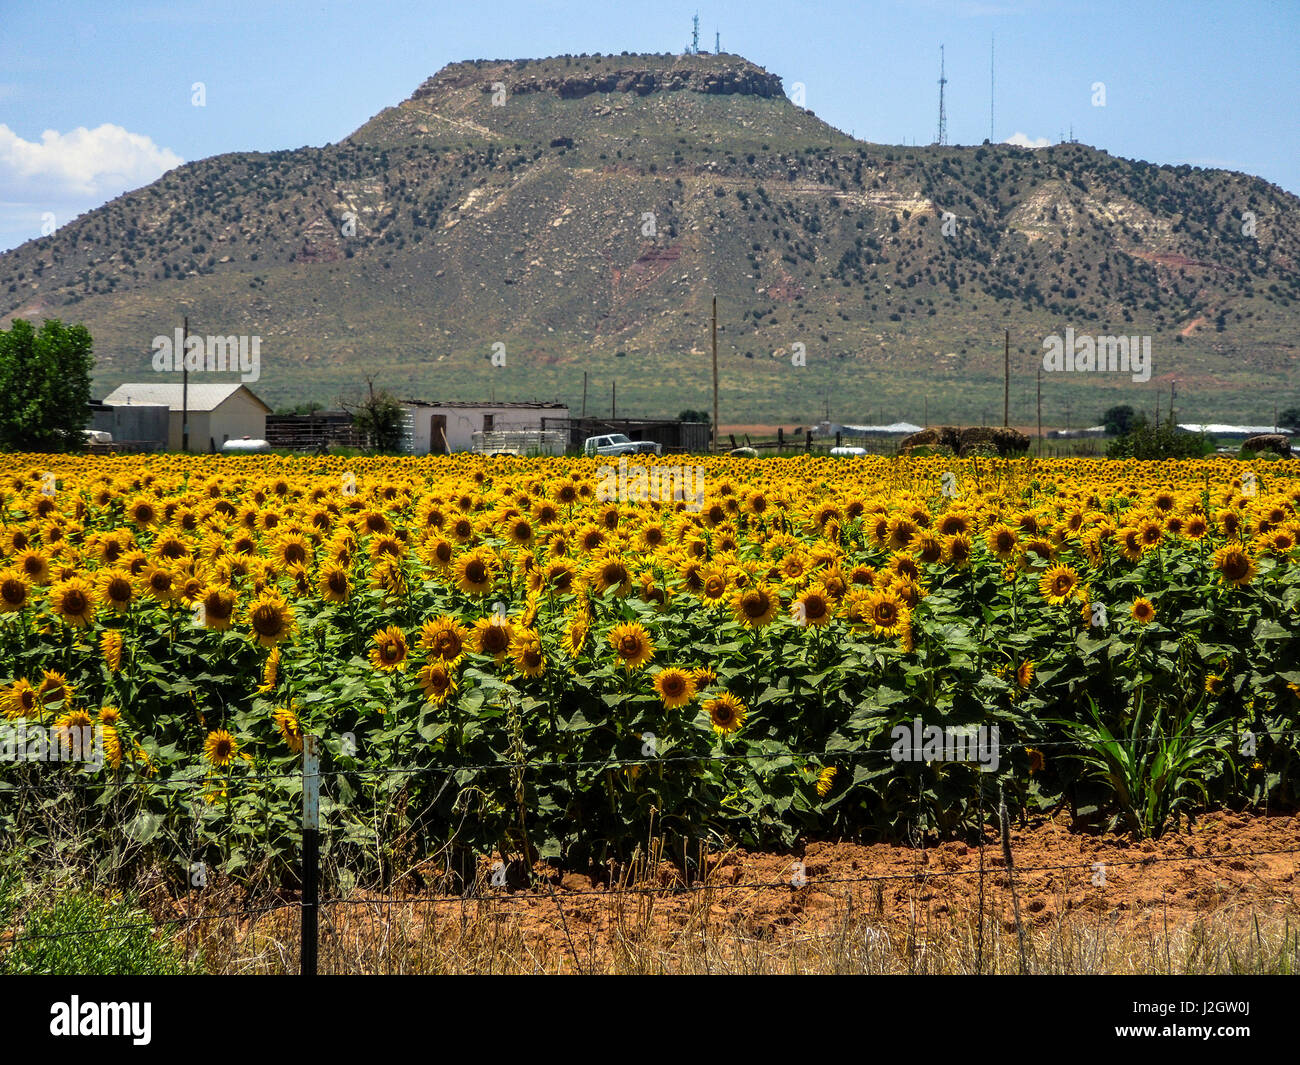 Hobbs, New Mexico. Sunflower field, farms, and foothills in the high desert - Stock Image